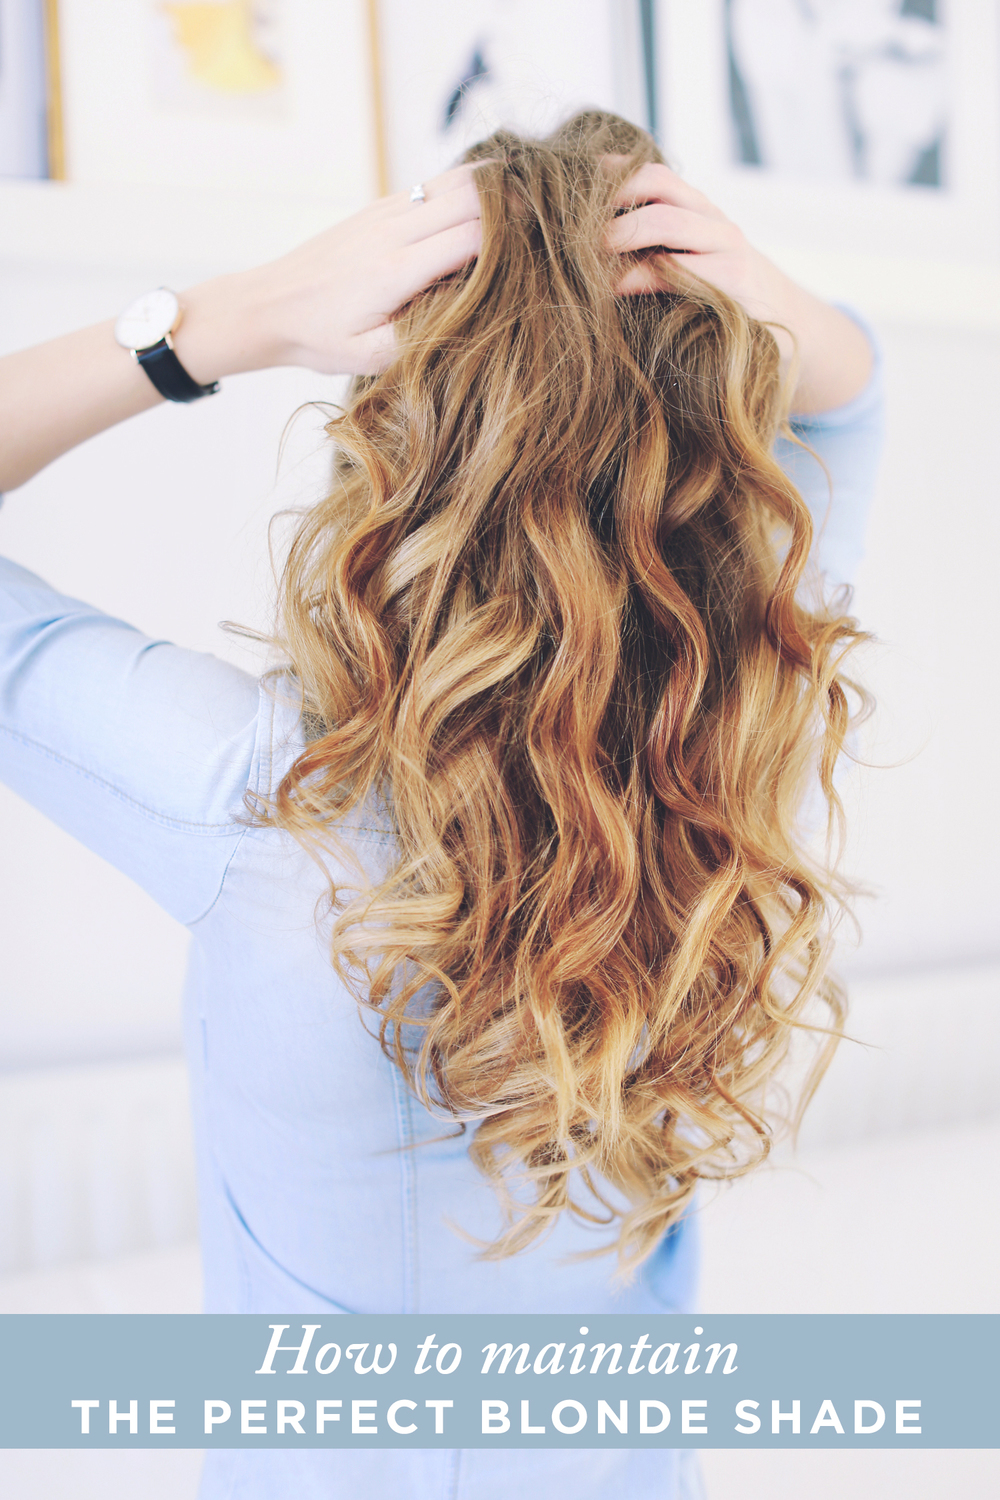 Blonde Hair Care How To Maintain The Perfect Blonde Shade Luxy Hair